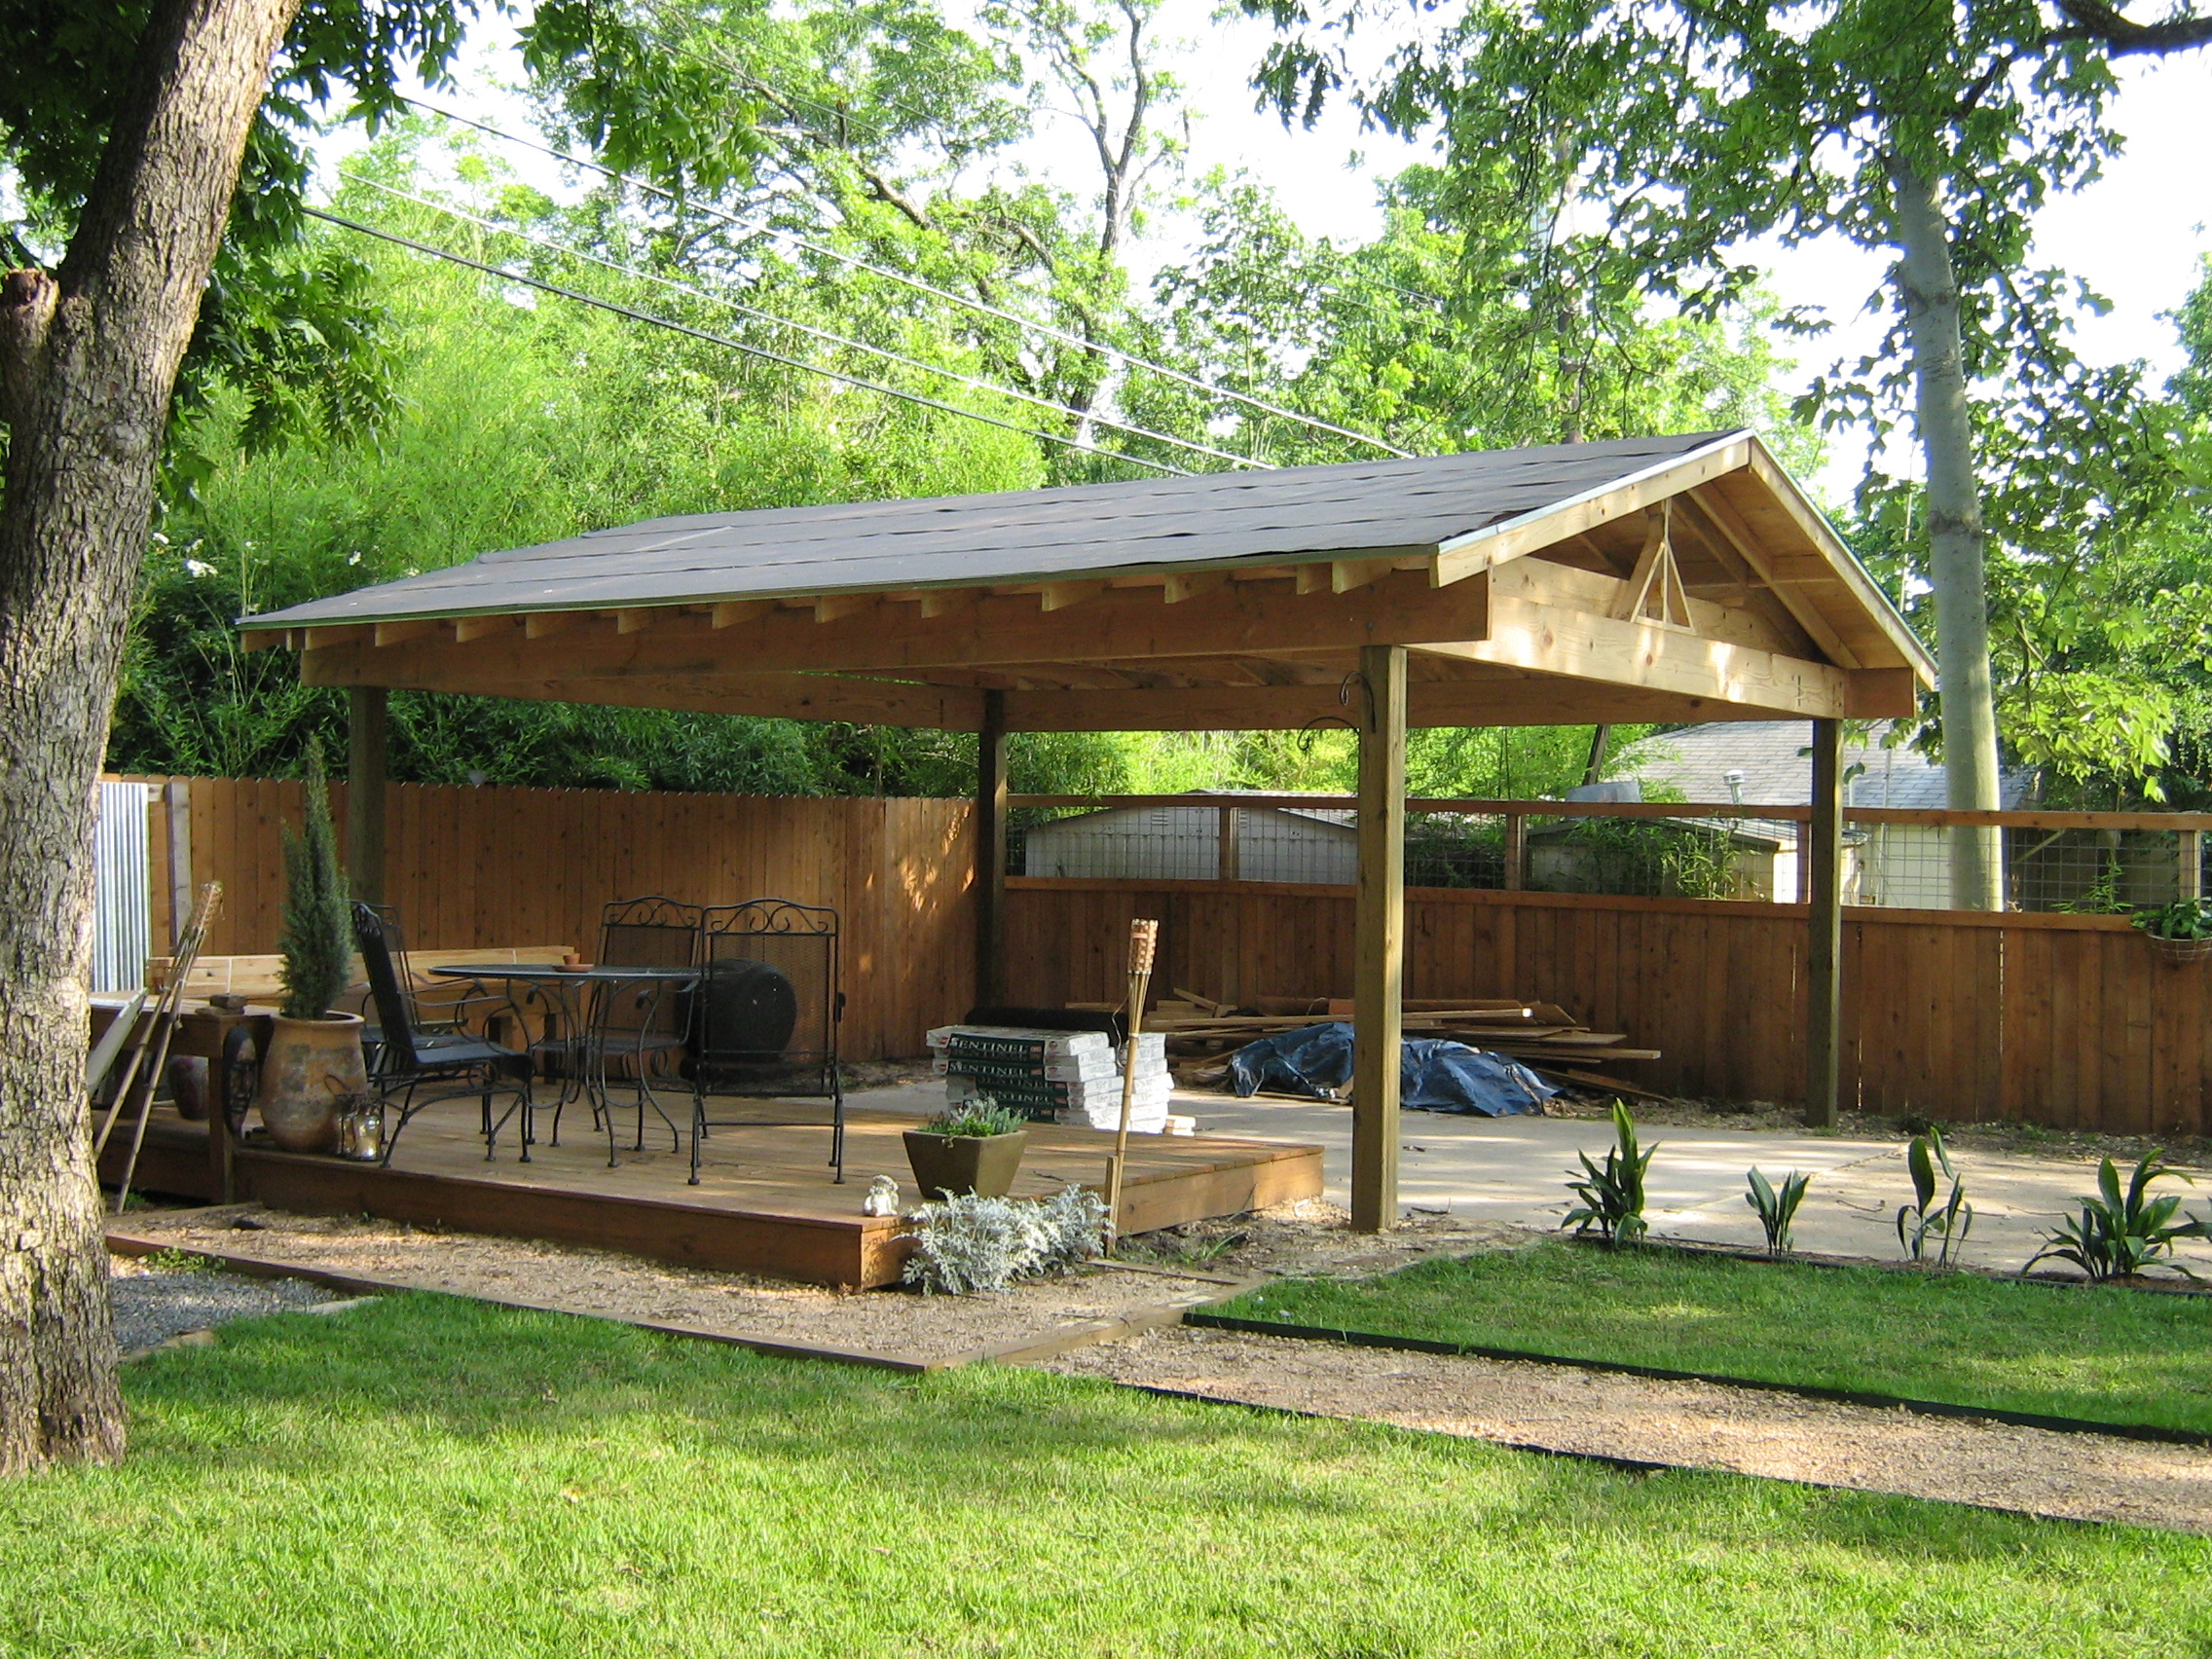 How to build wood carport kits do it yourself plans for 4 car carport plans